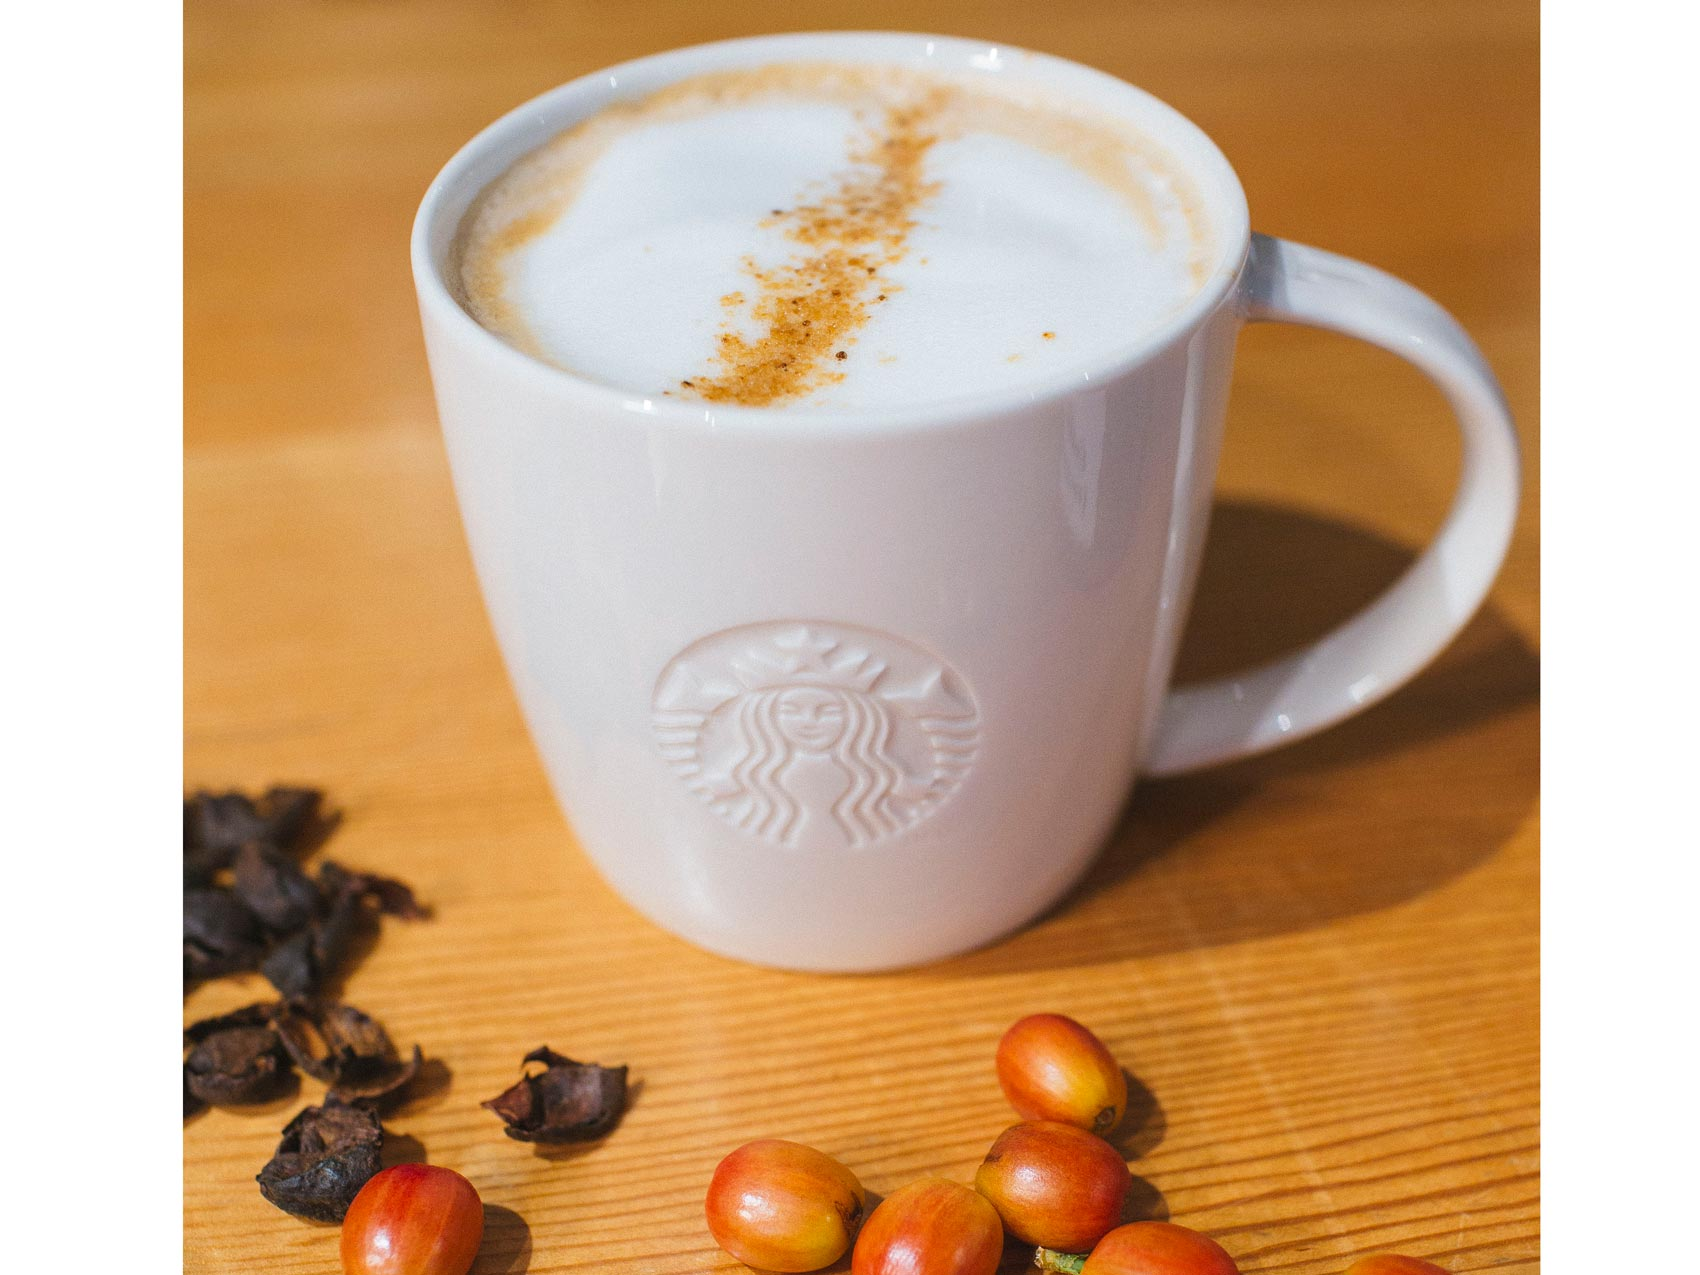 Starbucks Cascara Latte